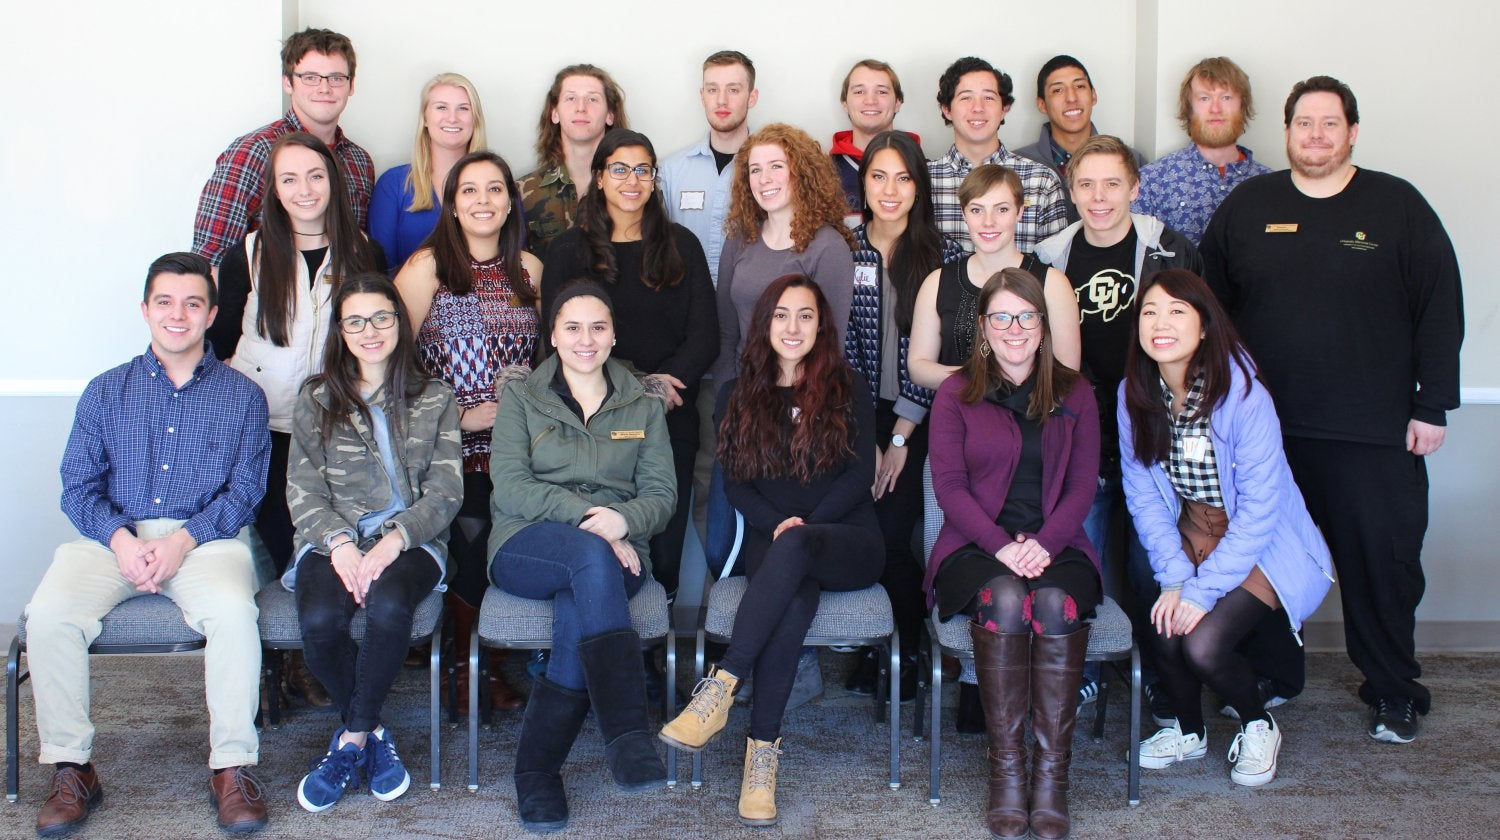 Students attending the UMC Student Employee Leadership Retreat in February 2017